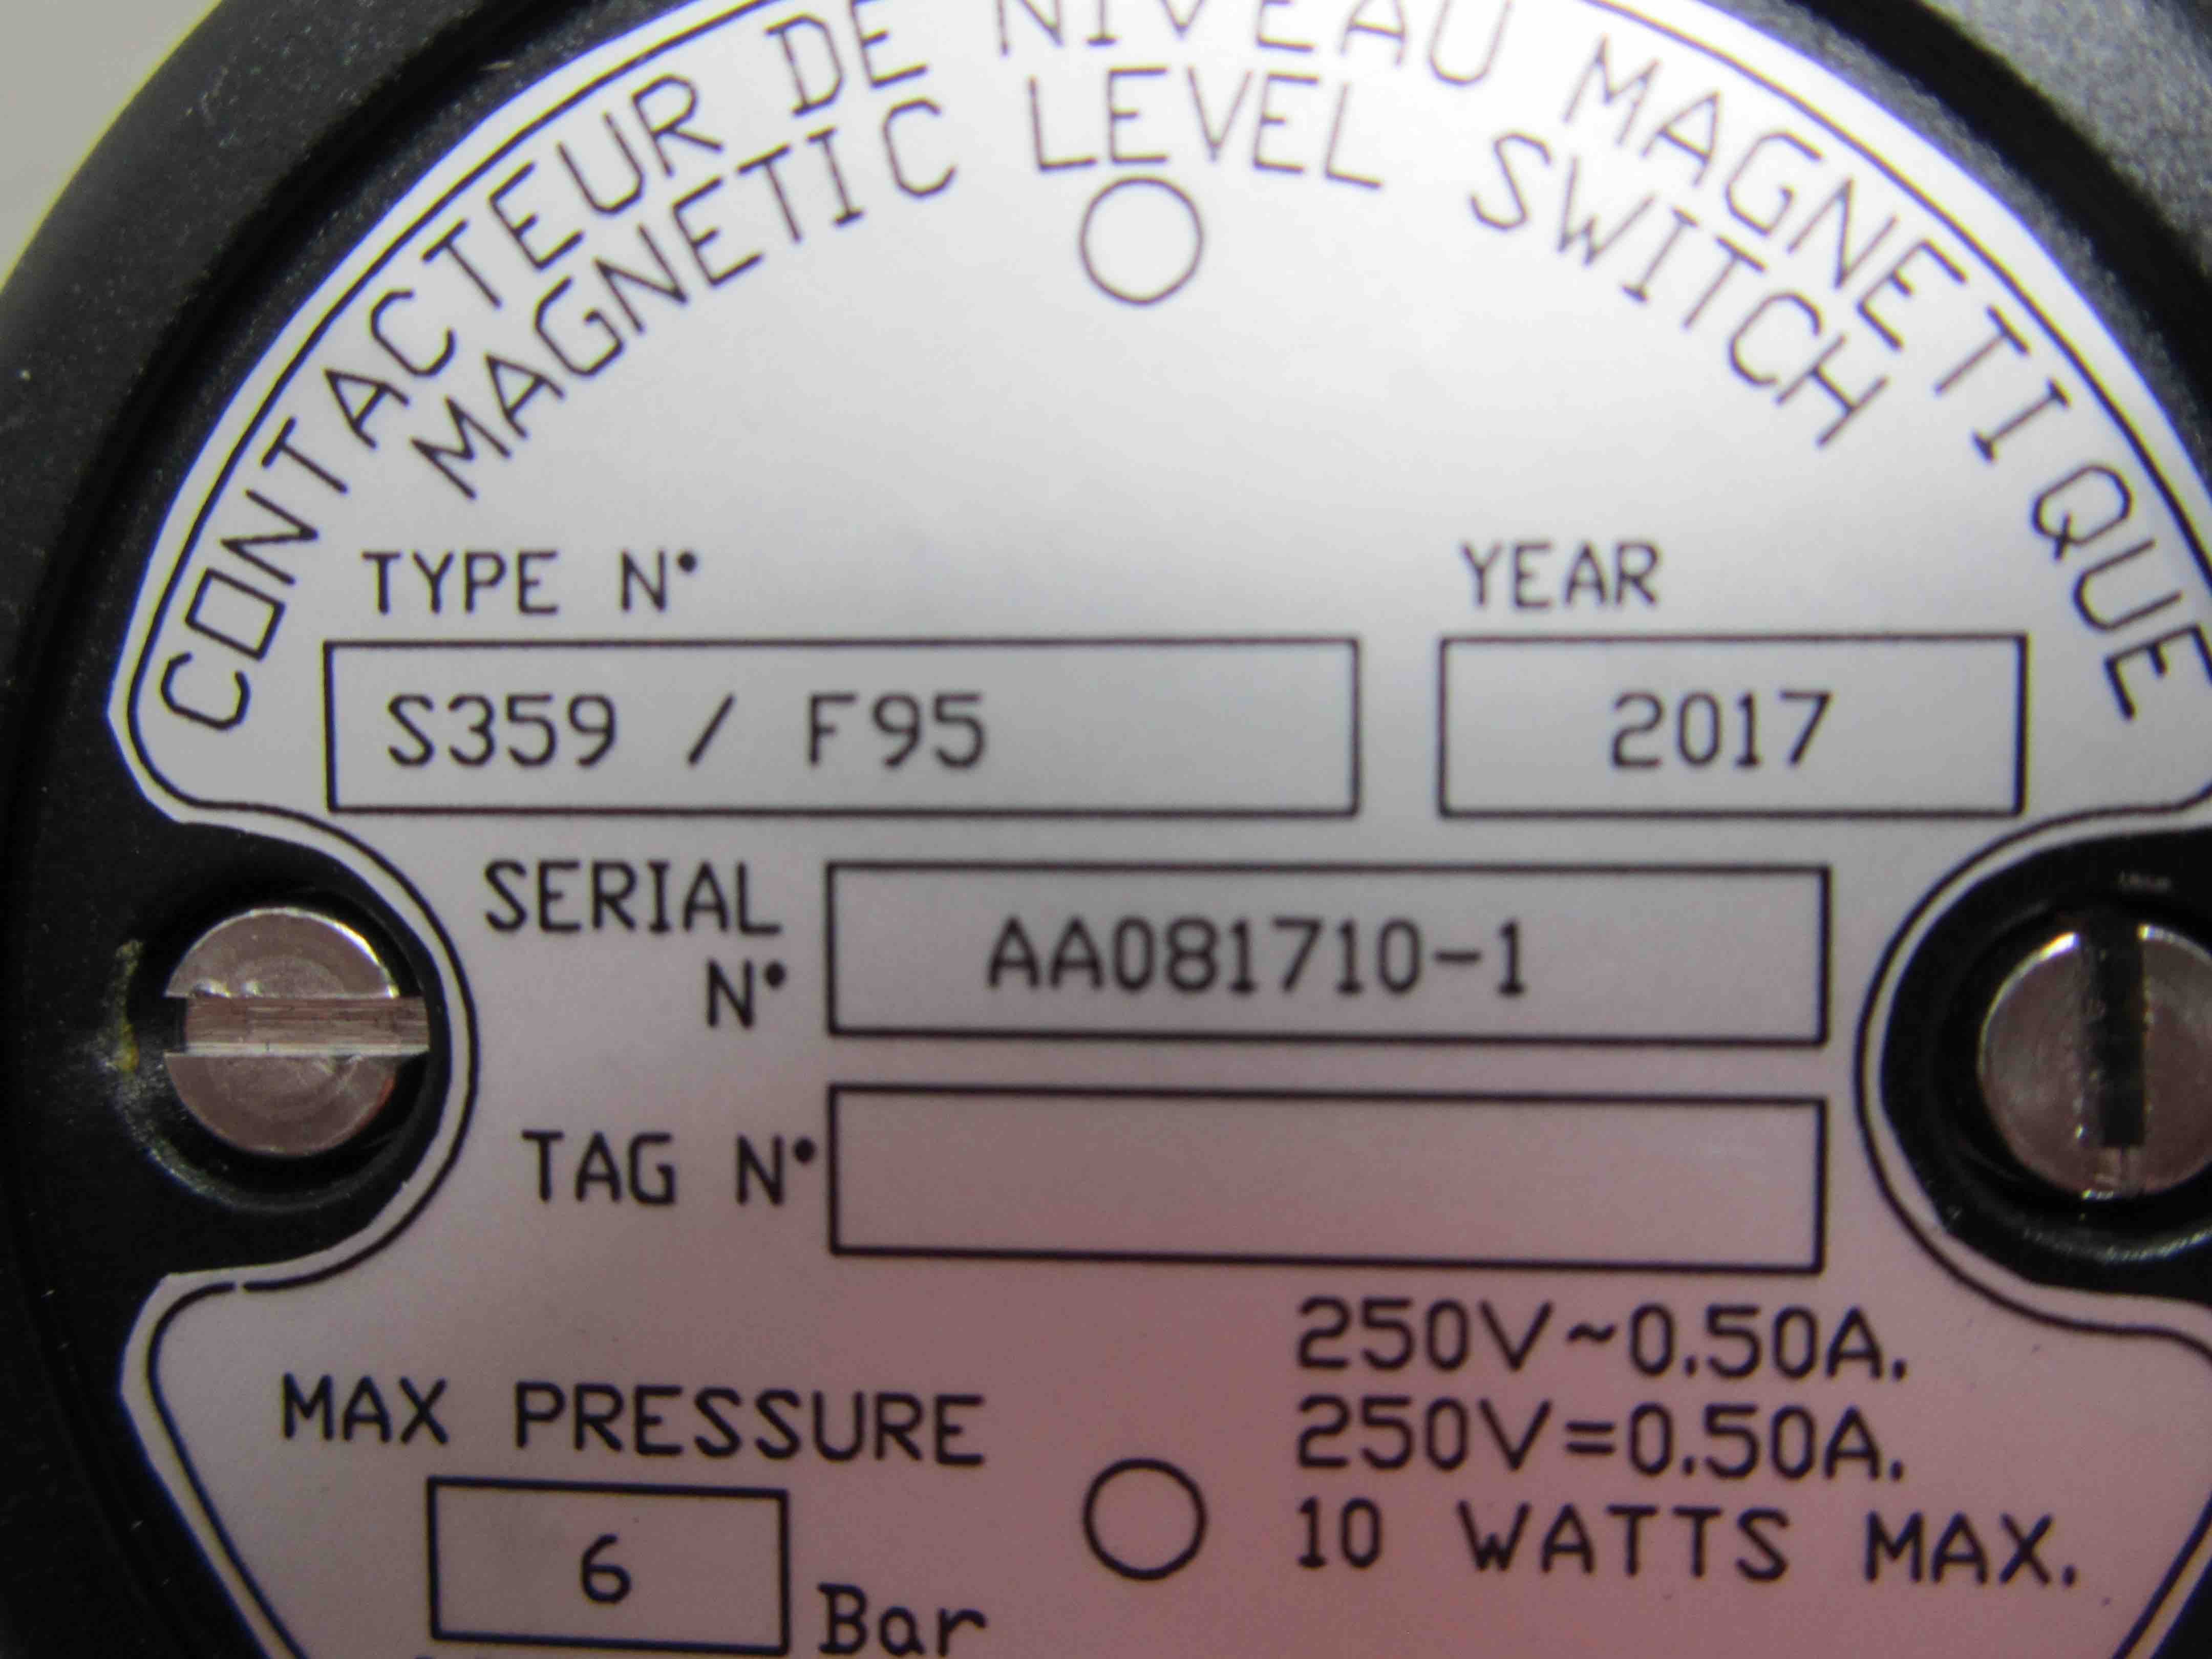 Level Switch S359:F95